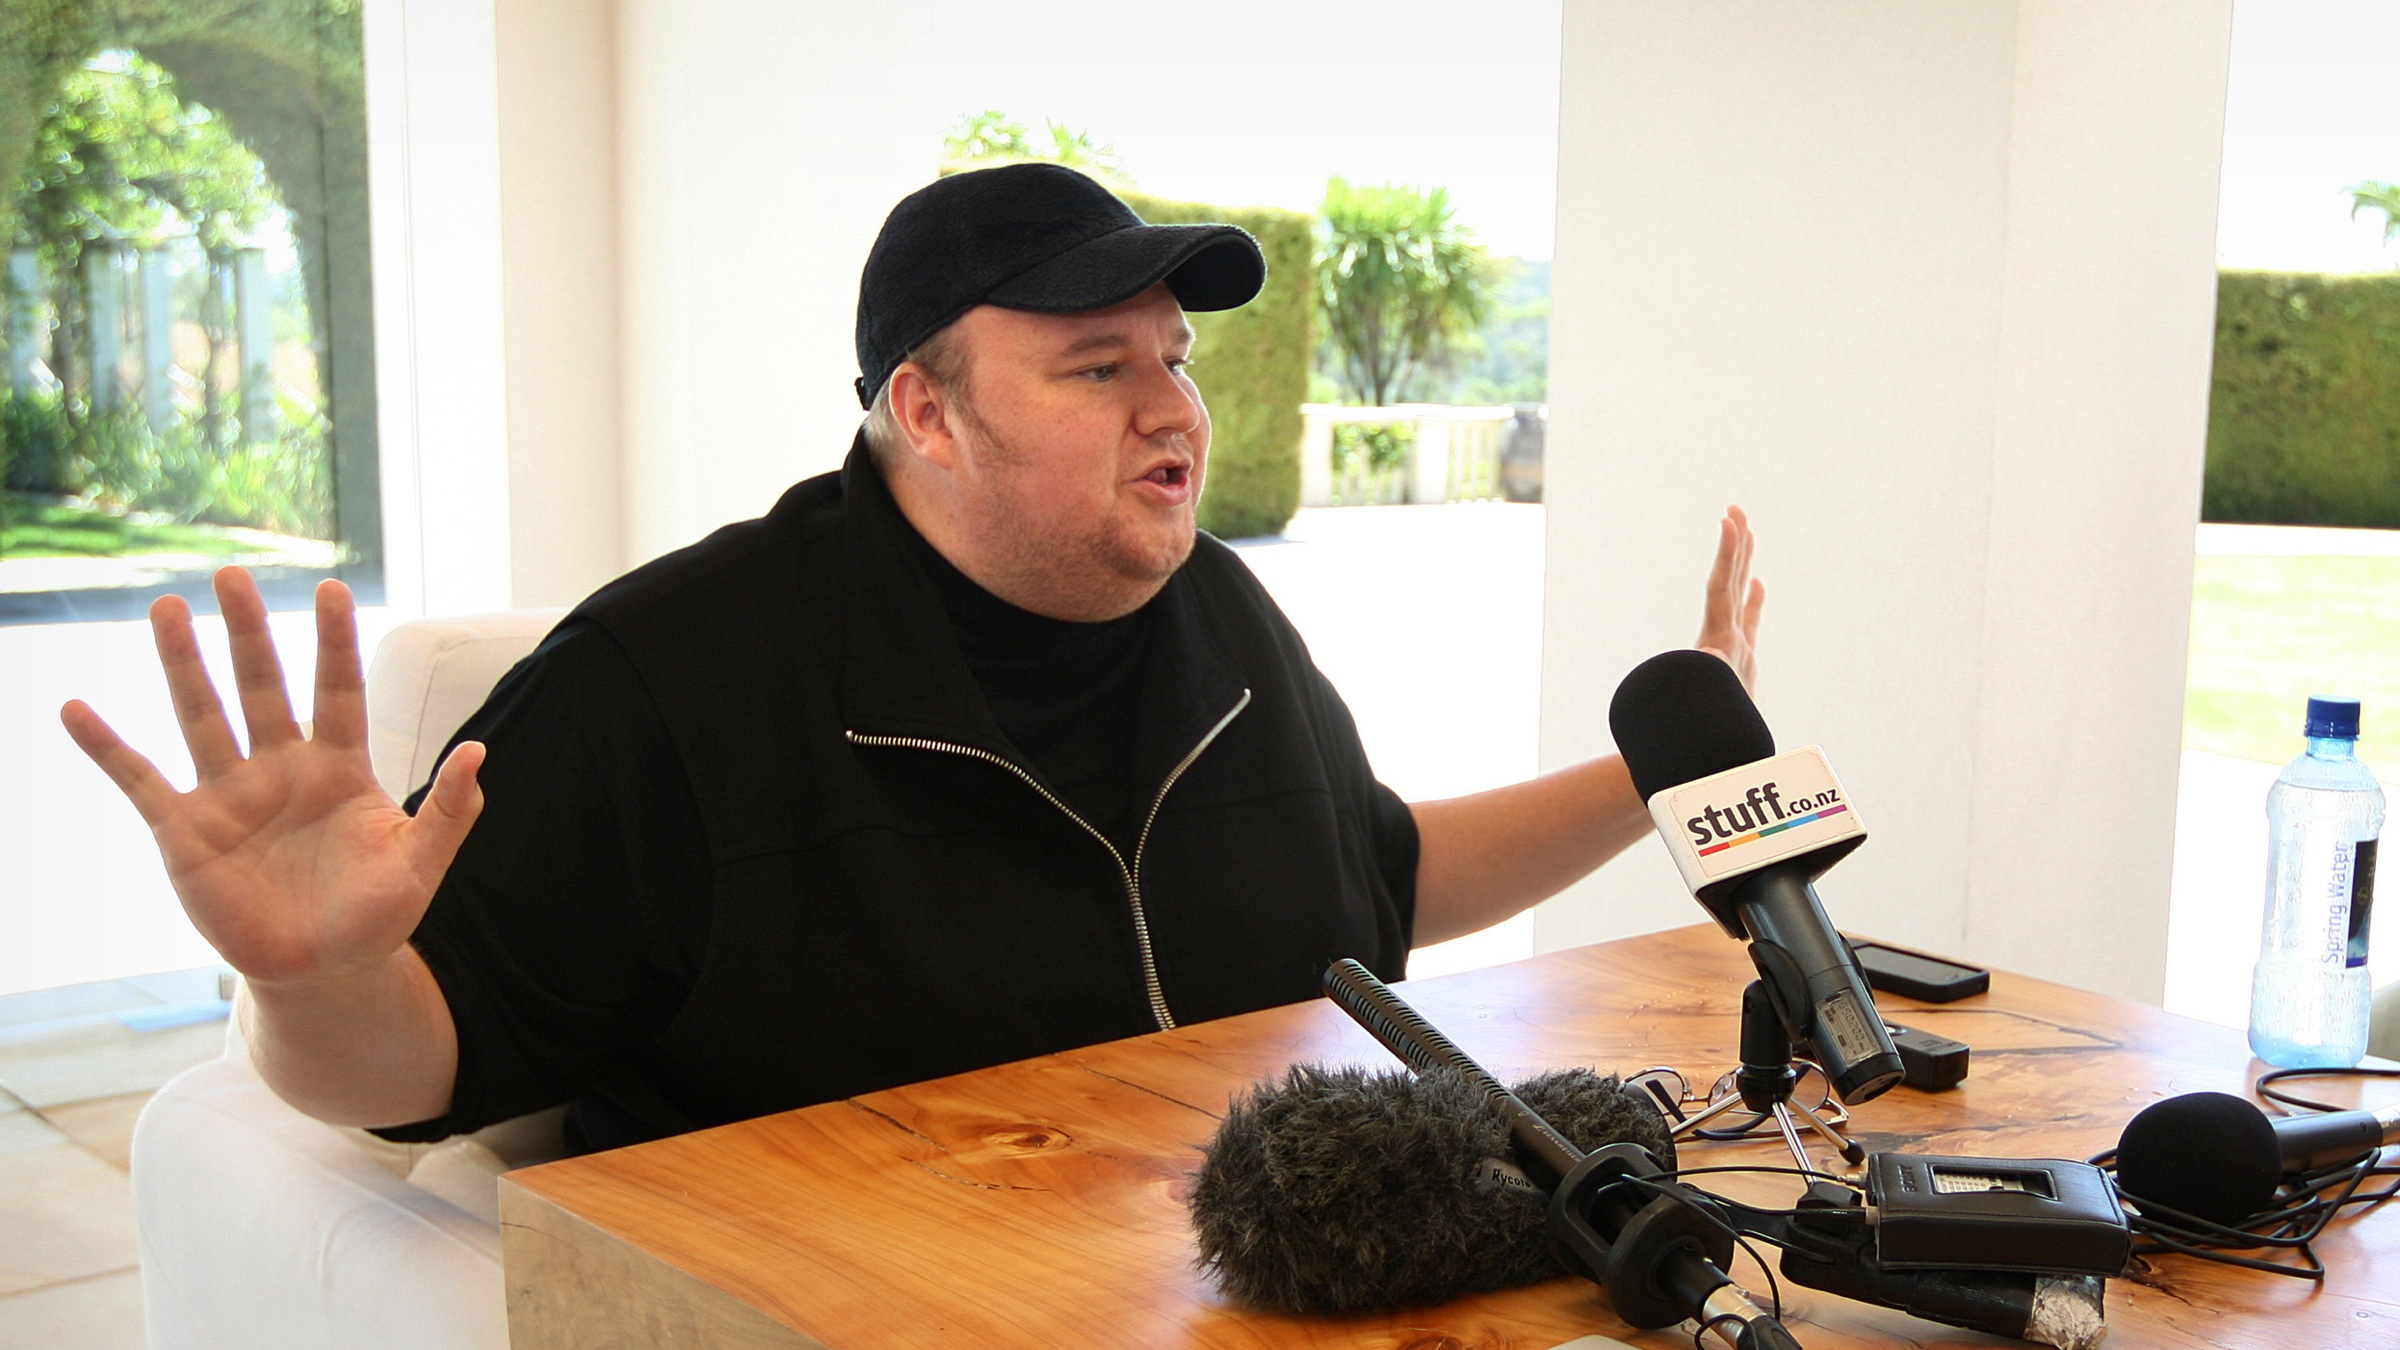 """Indicted Megaupload founder Kim Dotcom holds a press conference ahead of the launch of a new file-sharing website called """"Mega"""" at his Coatesville mansion in Auckland', New Zealand, Sunday, Jan. 20, 2013. The colorful entrepreneur unveiled the site ahead of a lavish gala and press conference on the anniversary of his arrest on racketeering charges related to his now-shuttered Megaupload file-sharing site. (AP Photo/New Zealand Herald, Richard Robinson) New Zealand Out, Australia Out"""